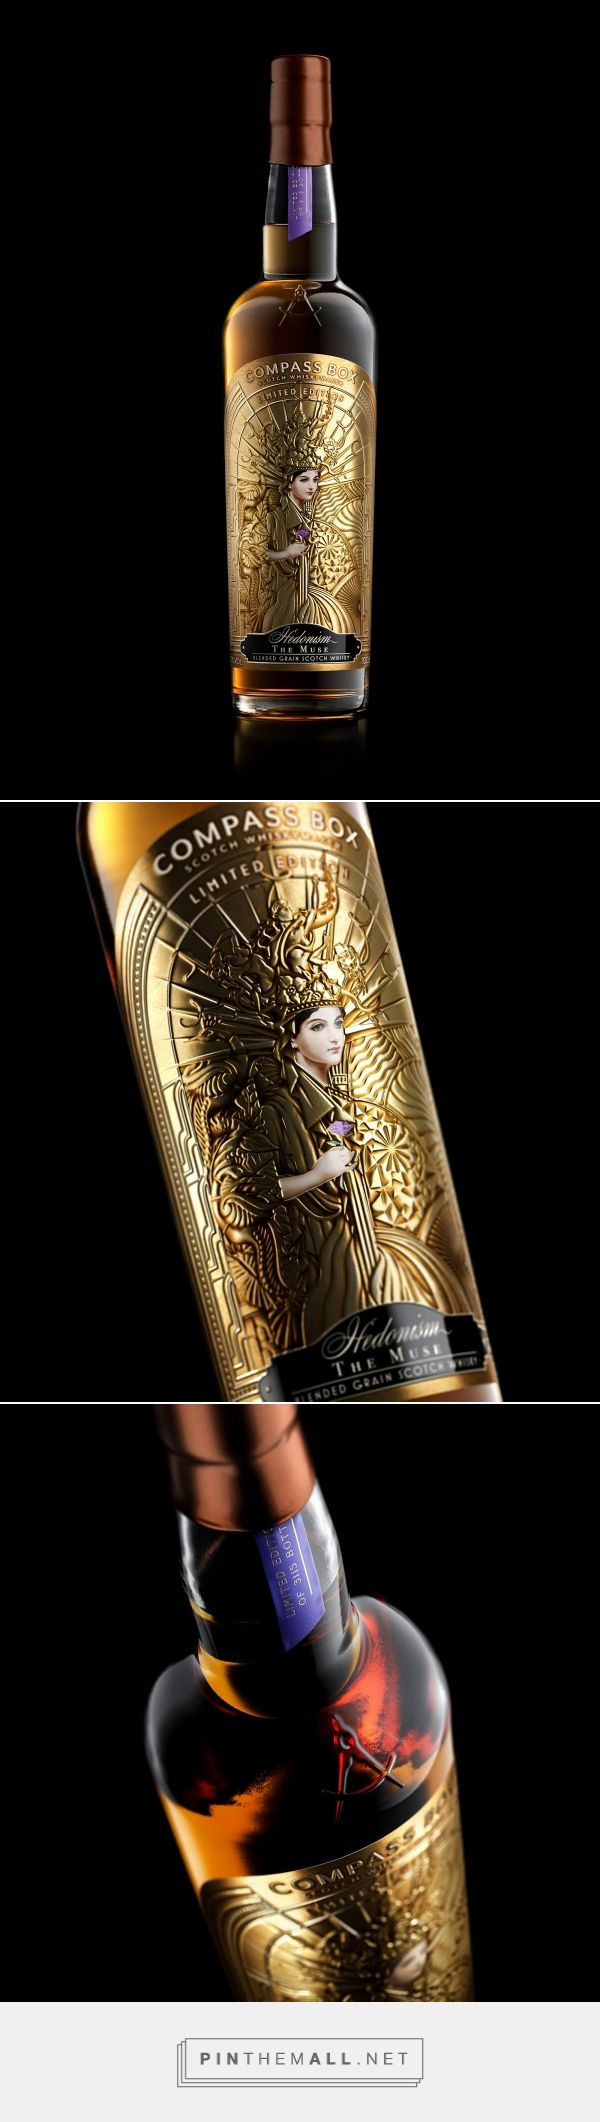 The Muse - A recognition of women in whisky from Compass Box for International Women's Day 2018 - packaging design by Stranger & Stranger - https://www.packagingoftheworld.com/2018/04/the-muse.html